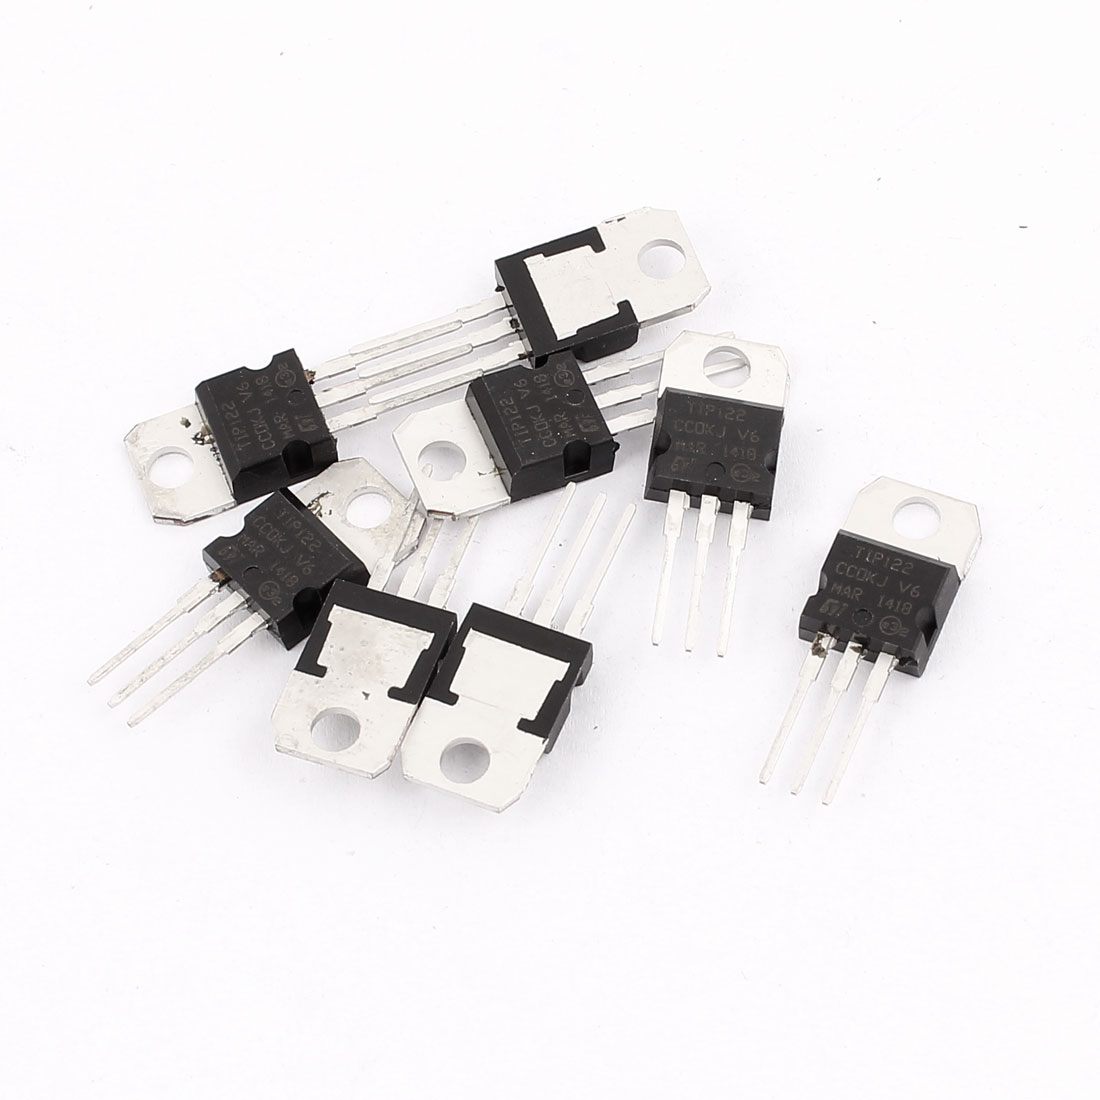 8 Pcs 100V 8A 3 Pin Terminals TIP122 NPN Power Transistor TO-220